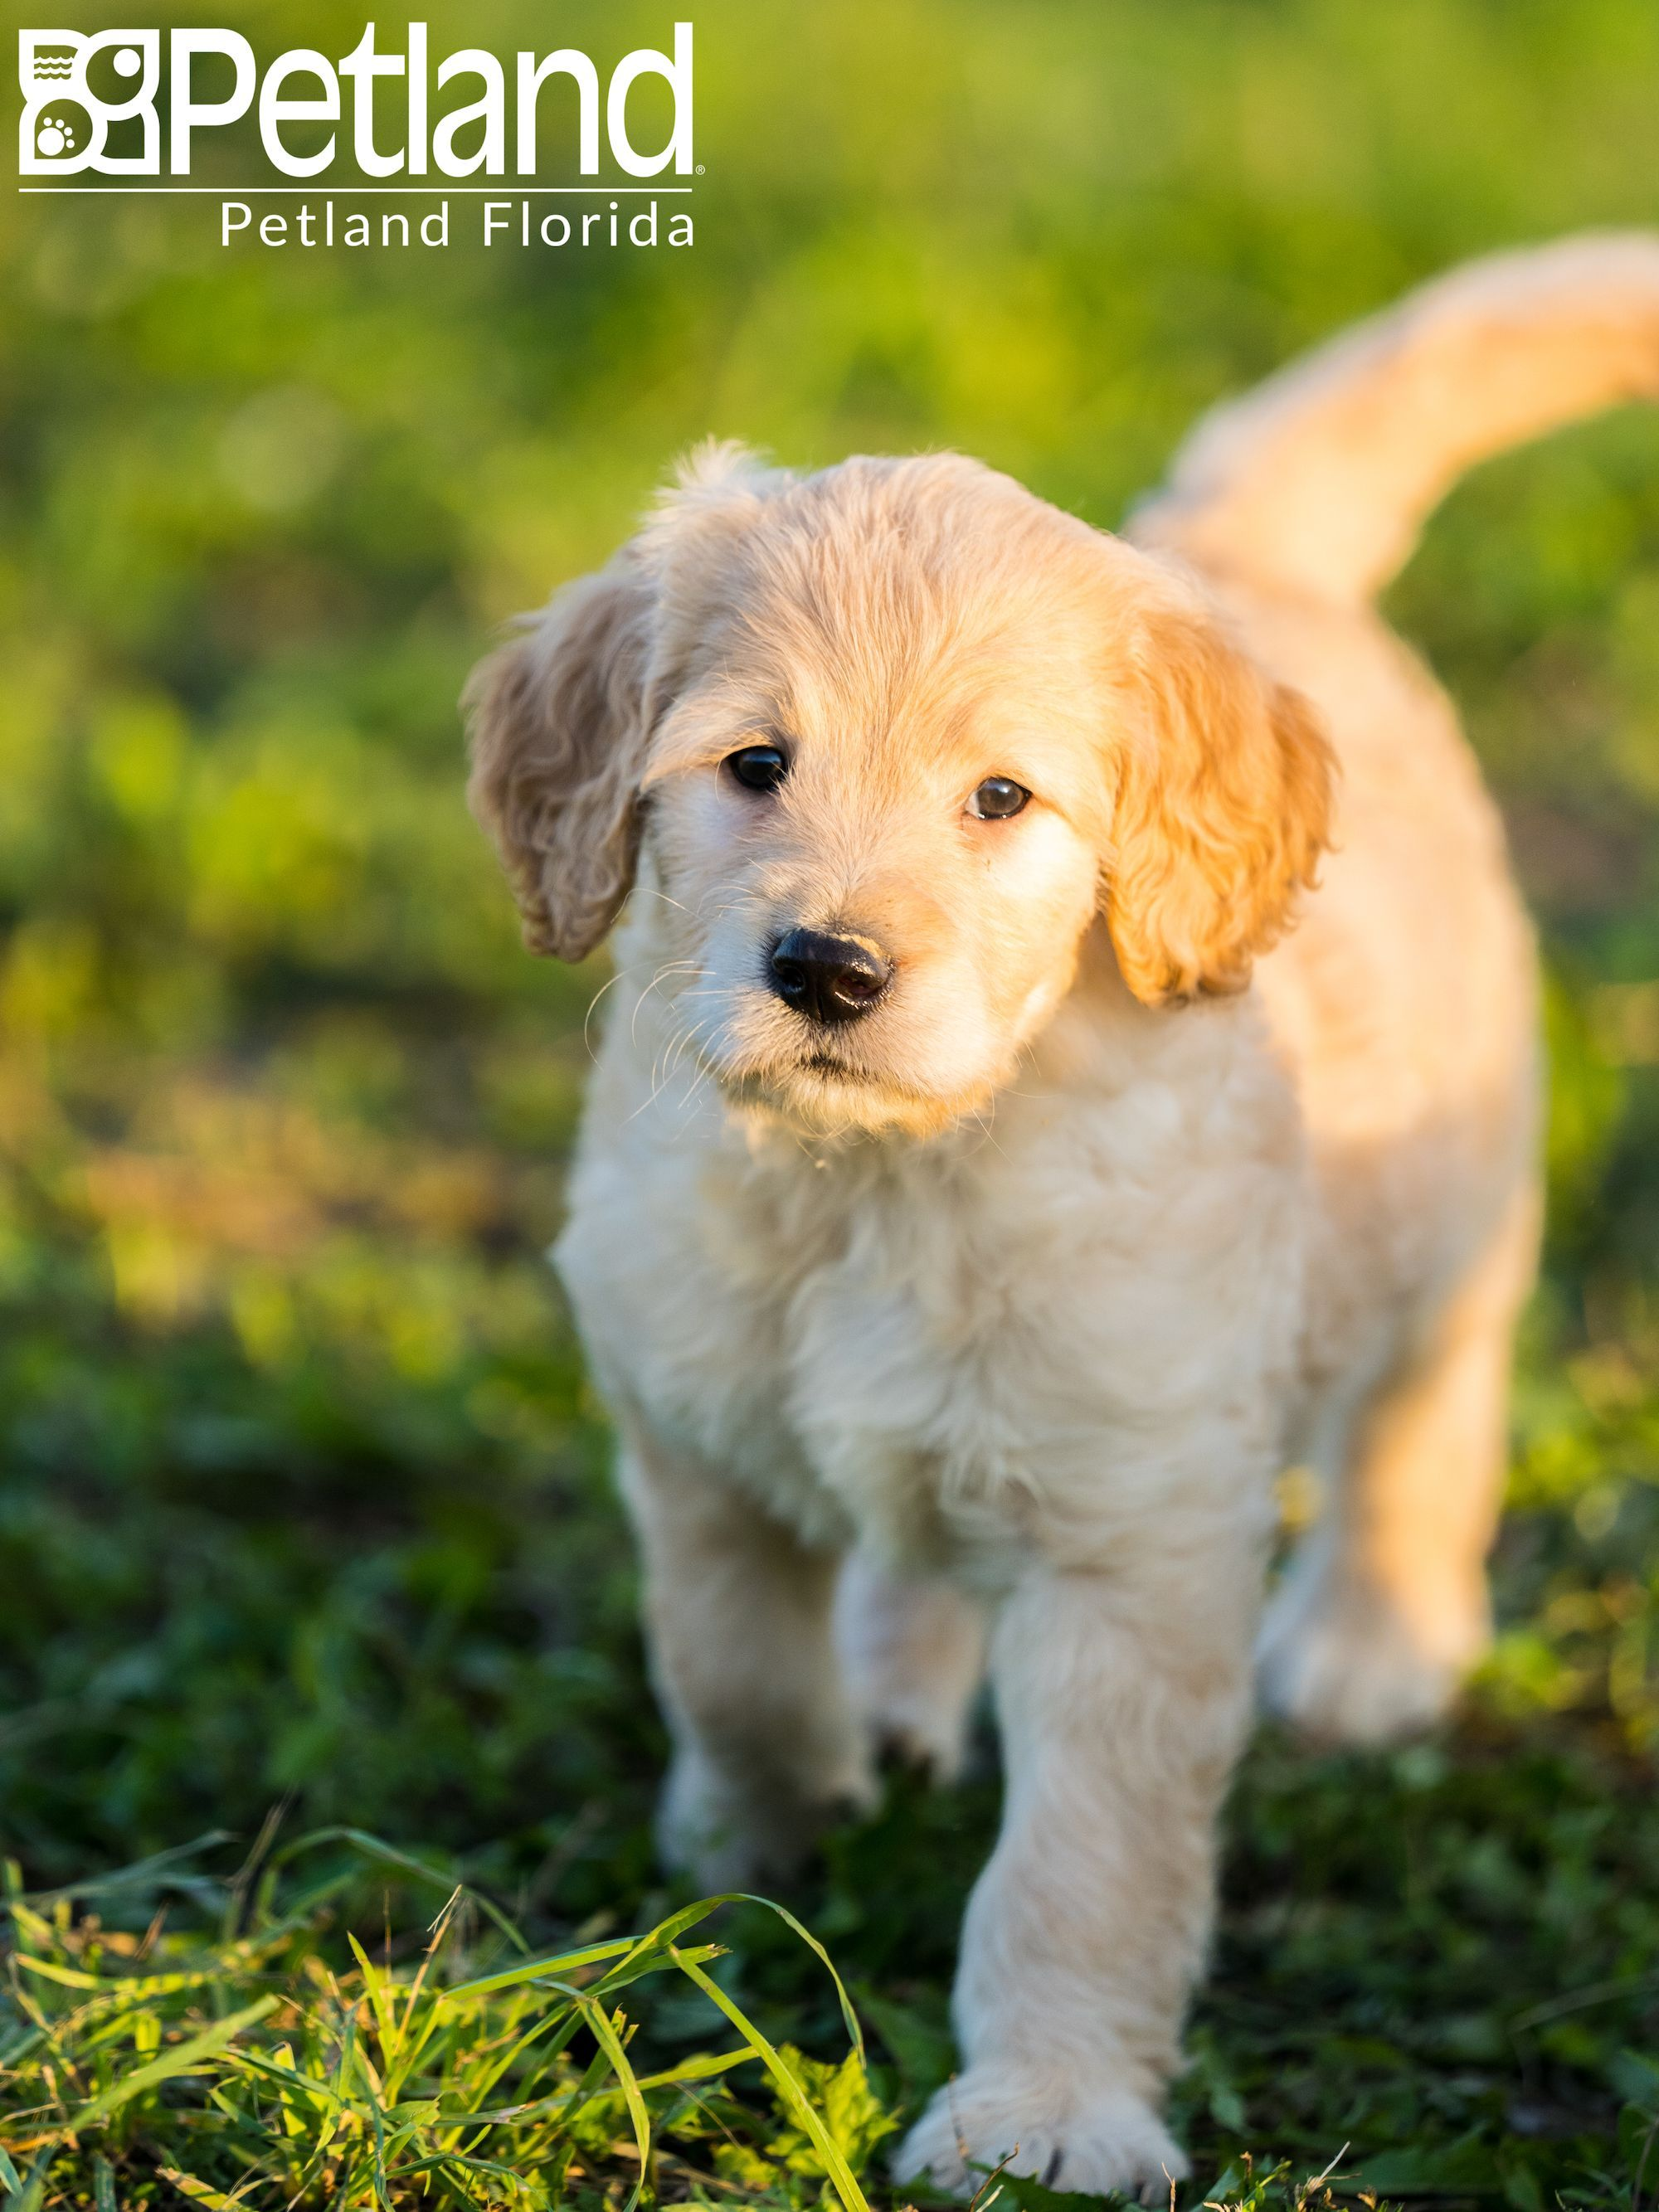 I M A Su Paw Star Petlandbreeders Breeders Puppy Doglover Adorable Dog Cute Pet Dogoftheday Photooftheday Puppylove Puppies Dog Lovers Pets